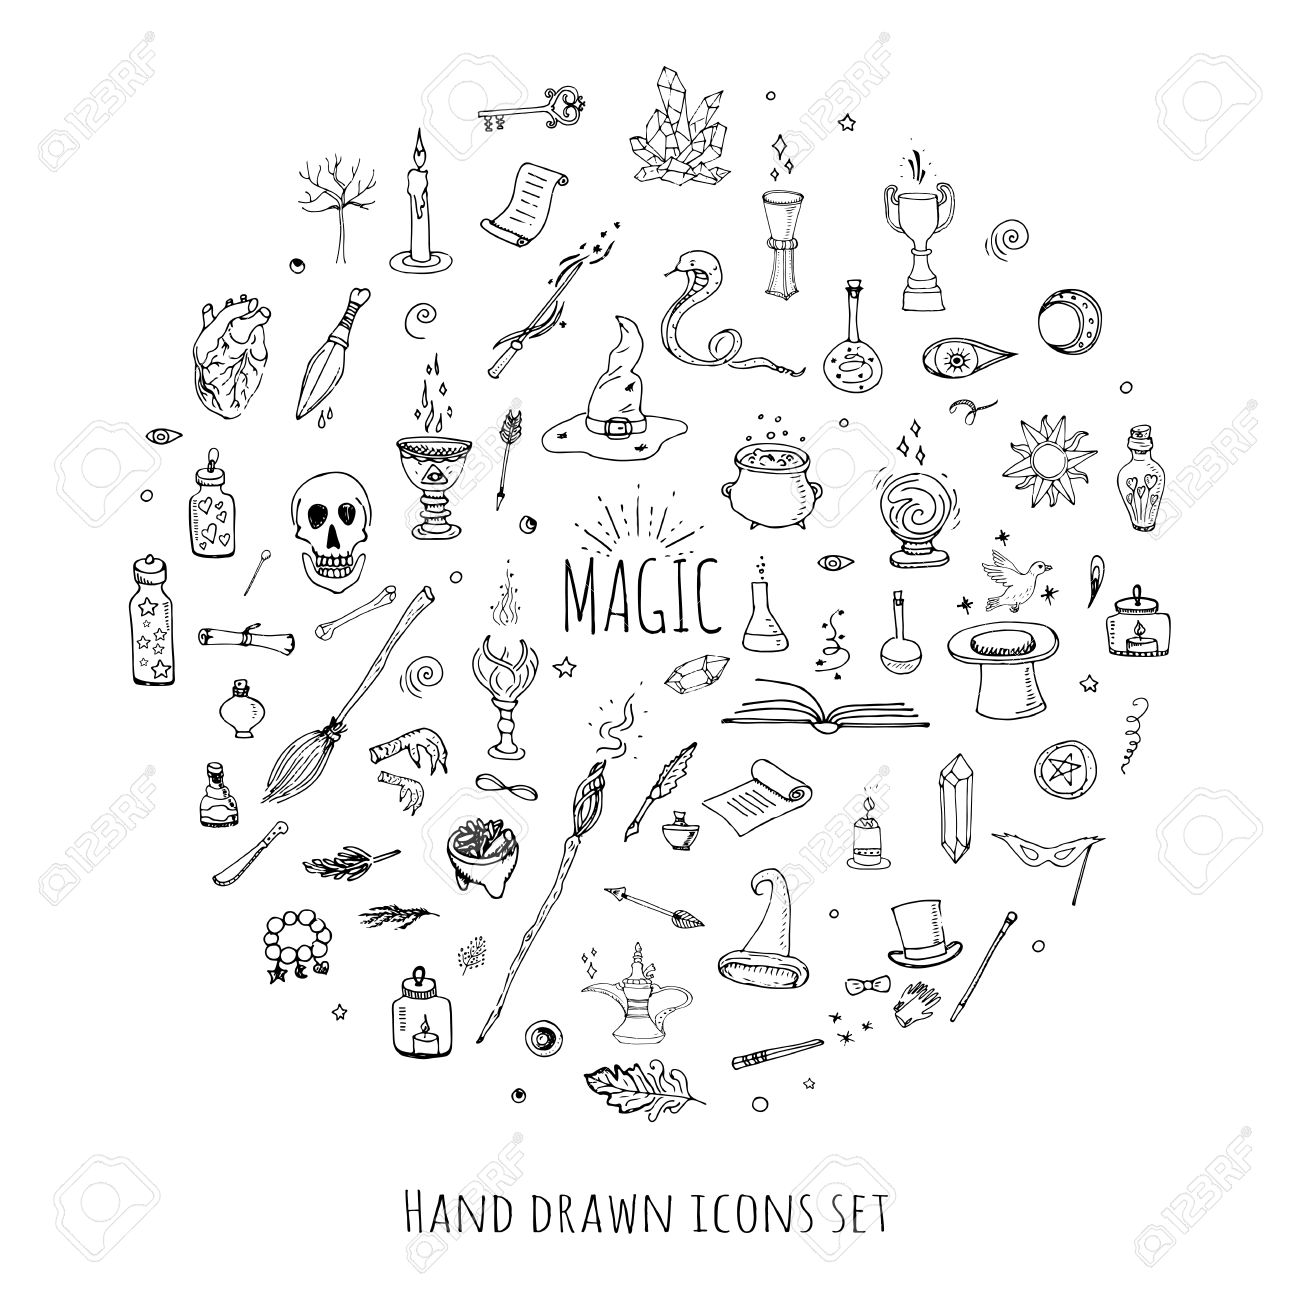 Hand drawn doodle magic set vector illustration wizardy hand drawn doodle magic set vector illustration wizardy witchcraft symbols isolated icons collections cartoon sorcery biocorpaavc Choice Image